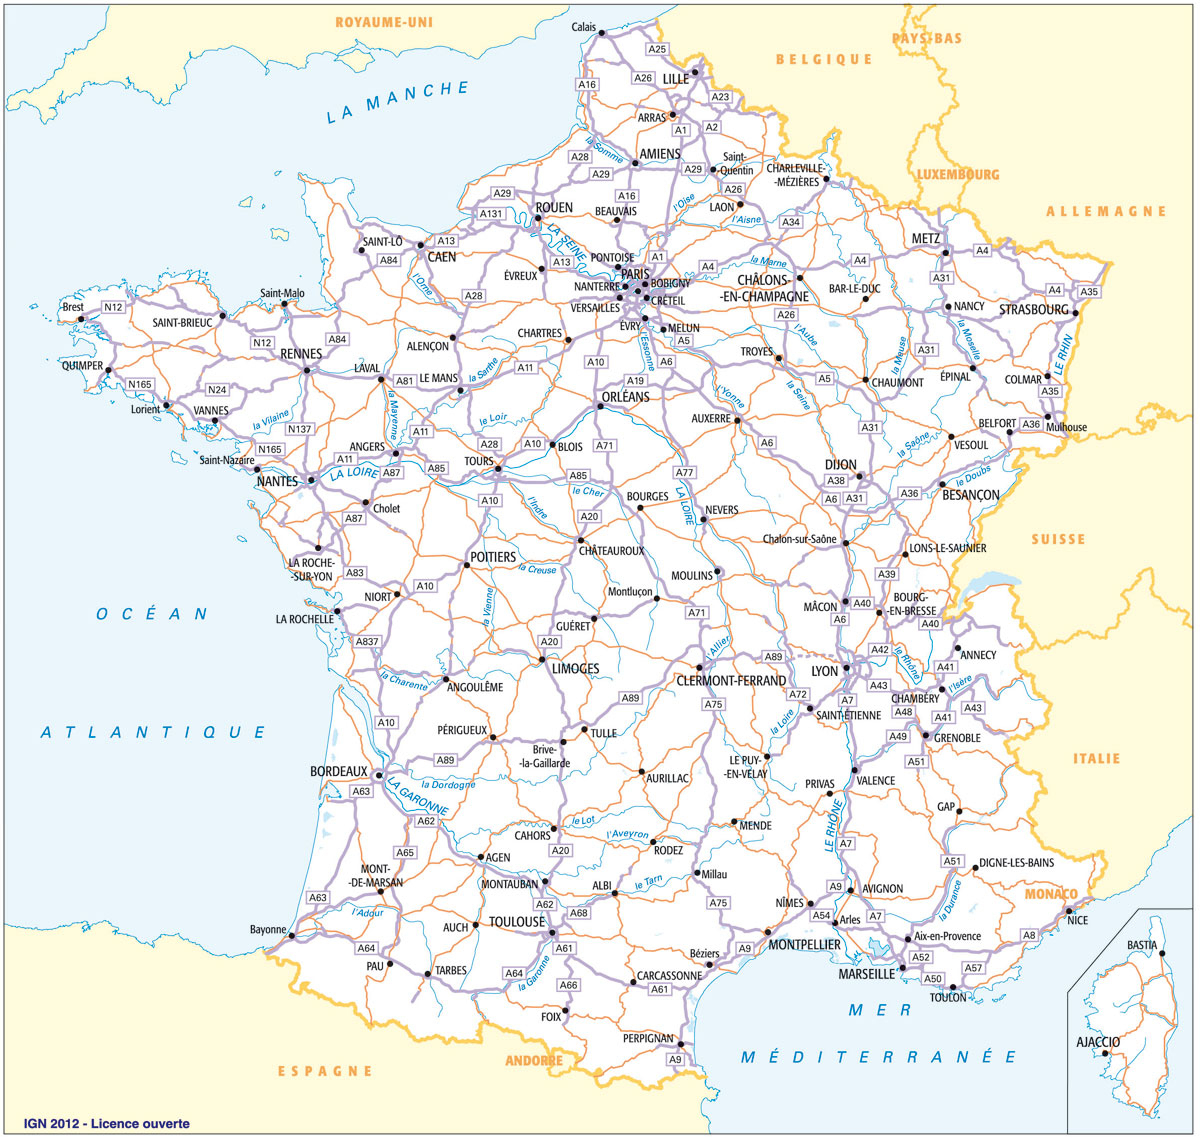 Calcul D'itineraire Routier - Carte Routière De France à Voir La Carte De France